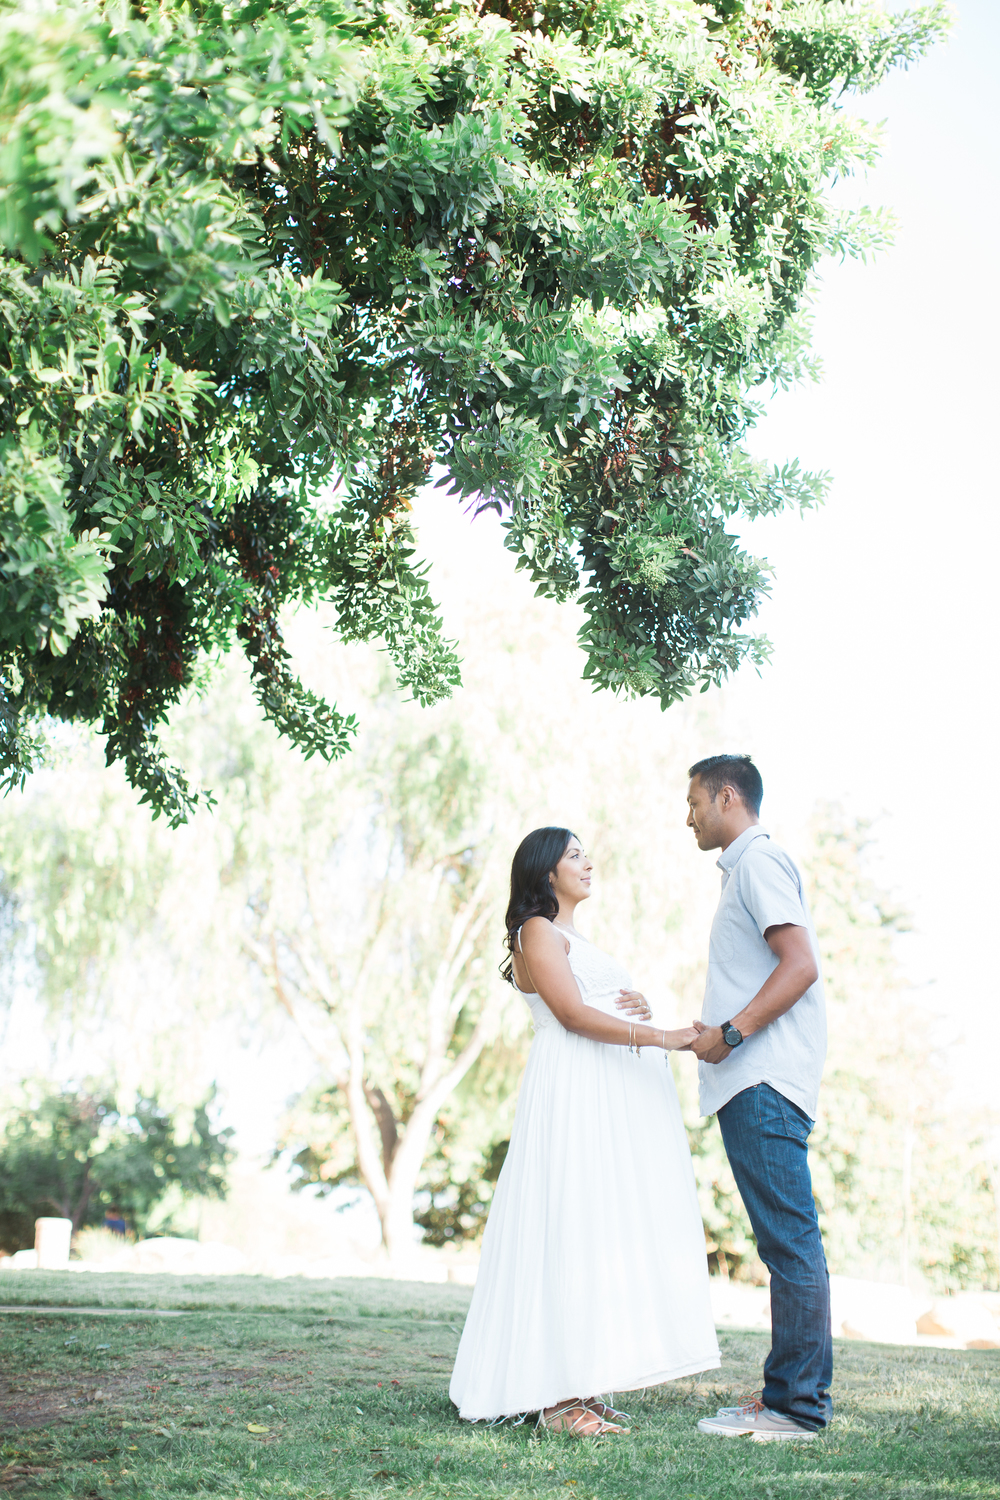 Marcella_Maternity_Cerritos_BrandonJFerlin_Photography-19.jpg